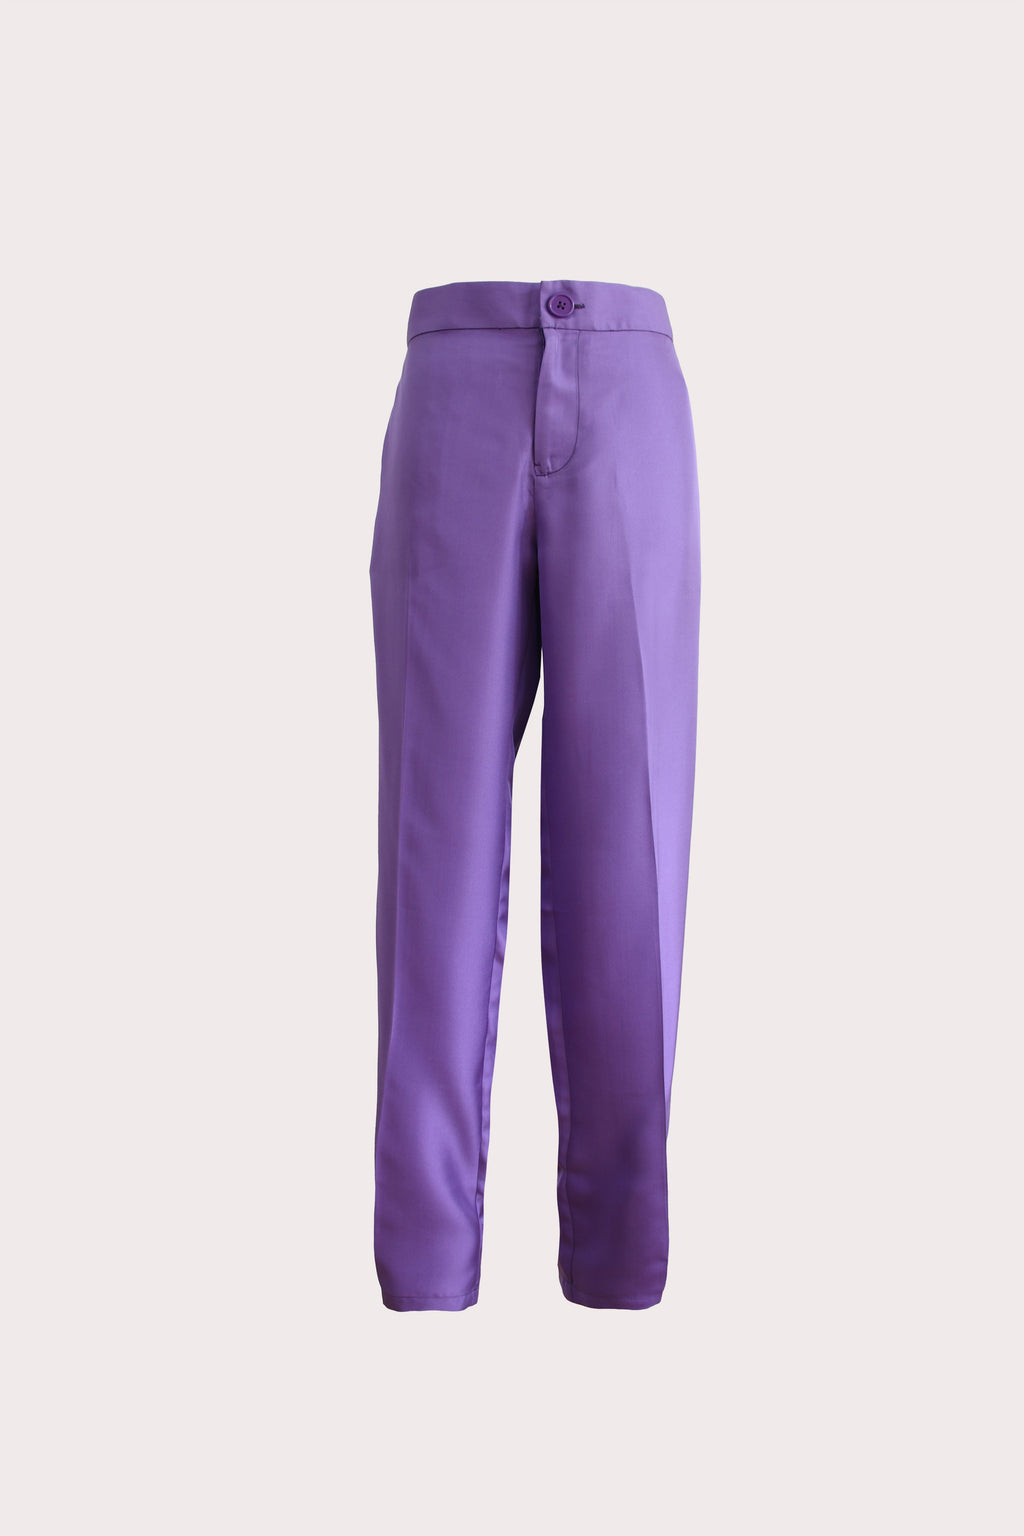 Katyusha Lilac simple pants